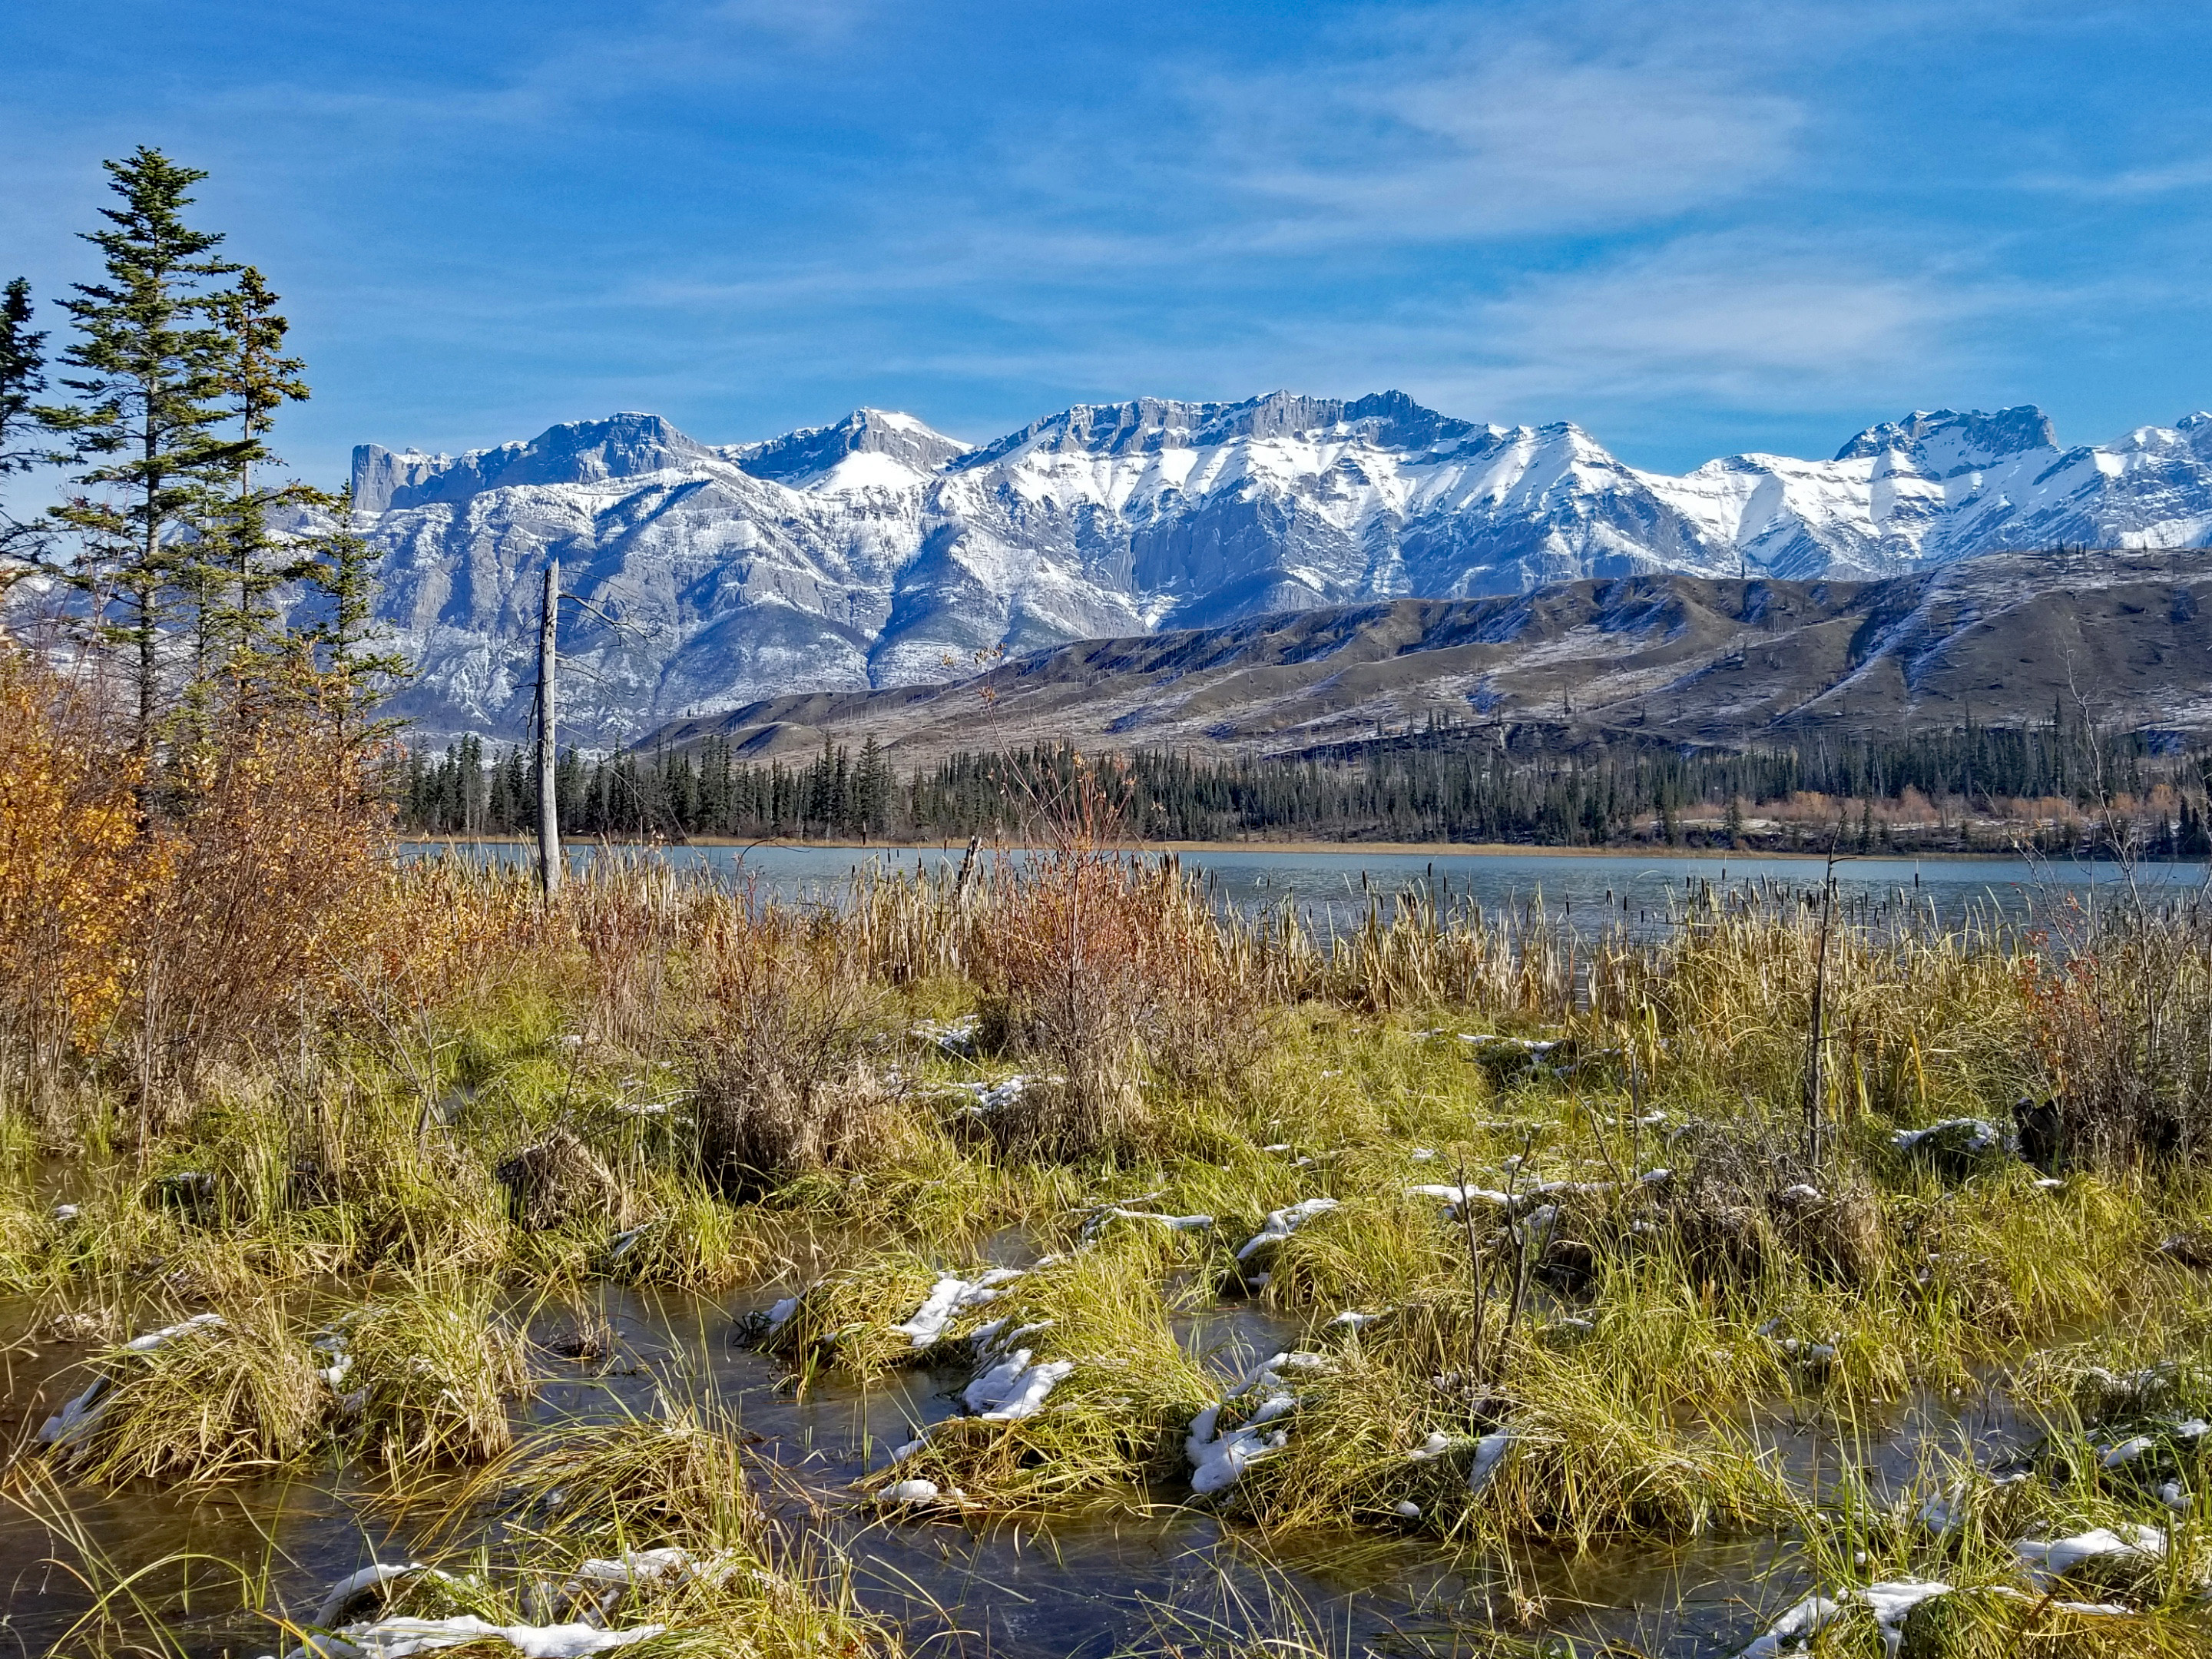 """<p>Talbot Lake, Jasper National Park, AB</p><p class=""""lightbox-share""""><span>Share: </span><a class=""""lightbox-fb"""" href=""""javascript:void(0);"""">Facebook</a><a class=""""lightbox-twit"""" href=""""https://twitter.com/home?status=I%20voted%20for%20Talbot%20Lake%20in%20the%20Cornice%20Calendar%20Contest.%20Choose%20your%20favourite%206%20photos:%20http://ow.ly/yCSmZ"""" target=""""_blank"""">Twitter</a></p><input type=hidden class=voteid value=1934 />"""